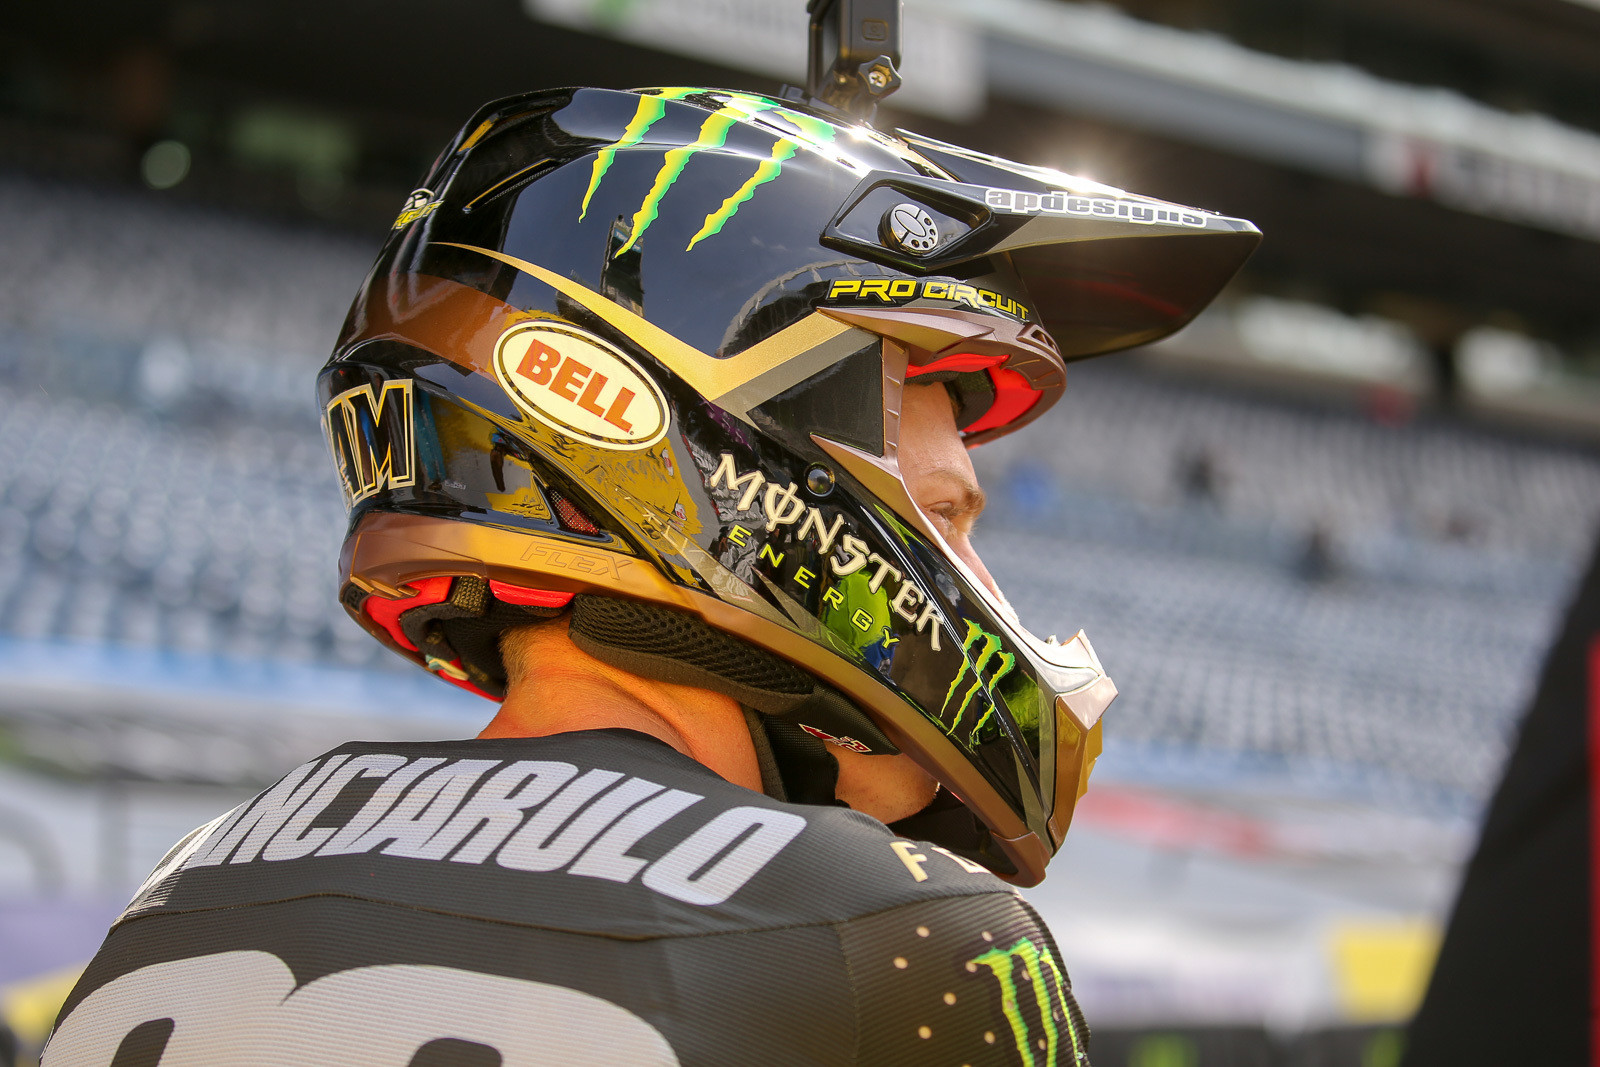 The Monster Energy Pro Circuit Kawasaki guys also had new helmets to match their gear this weekend.